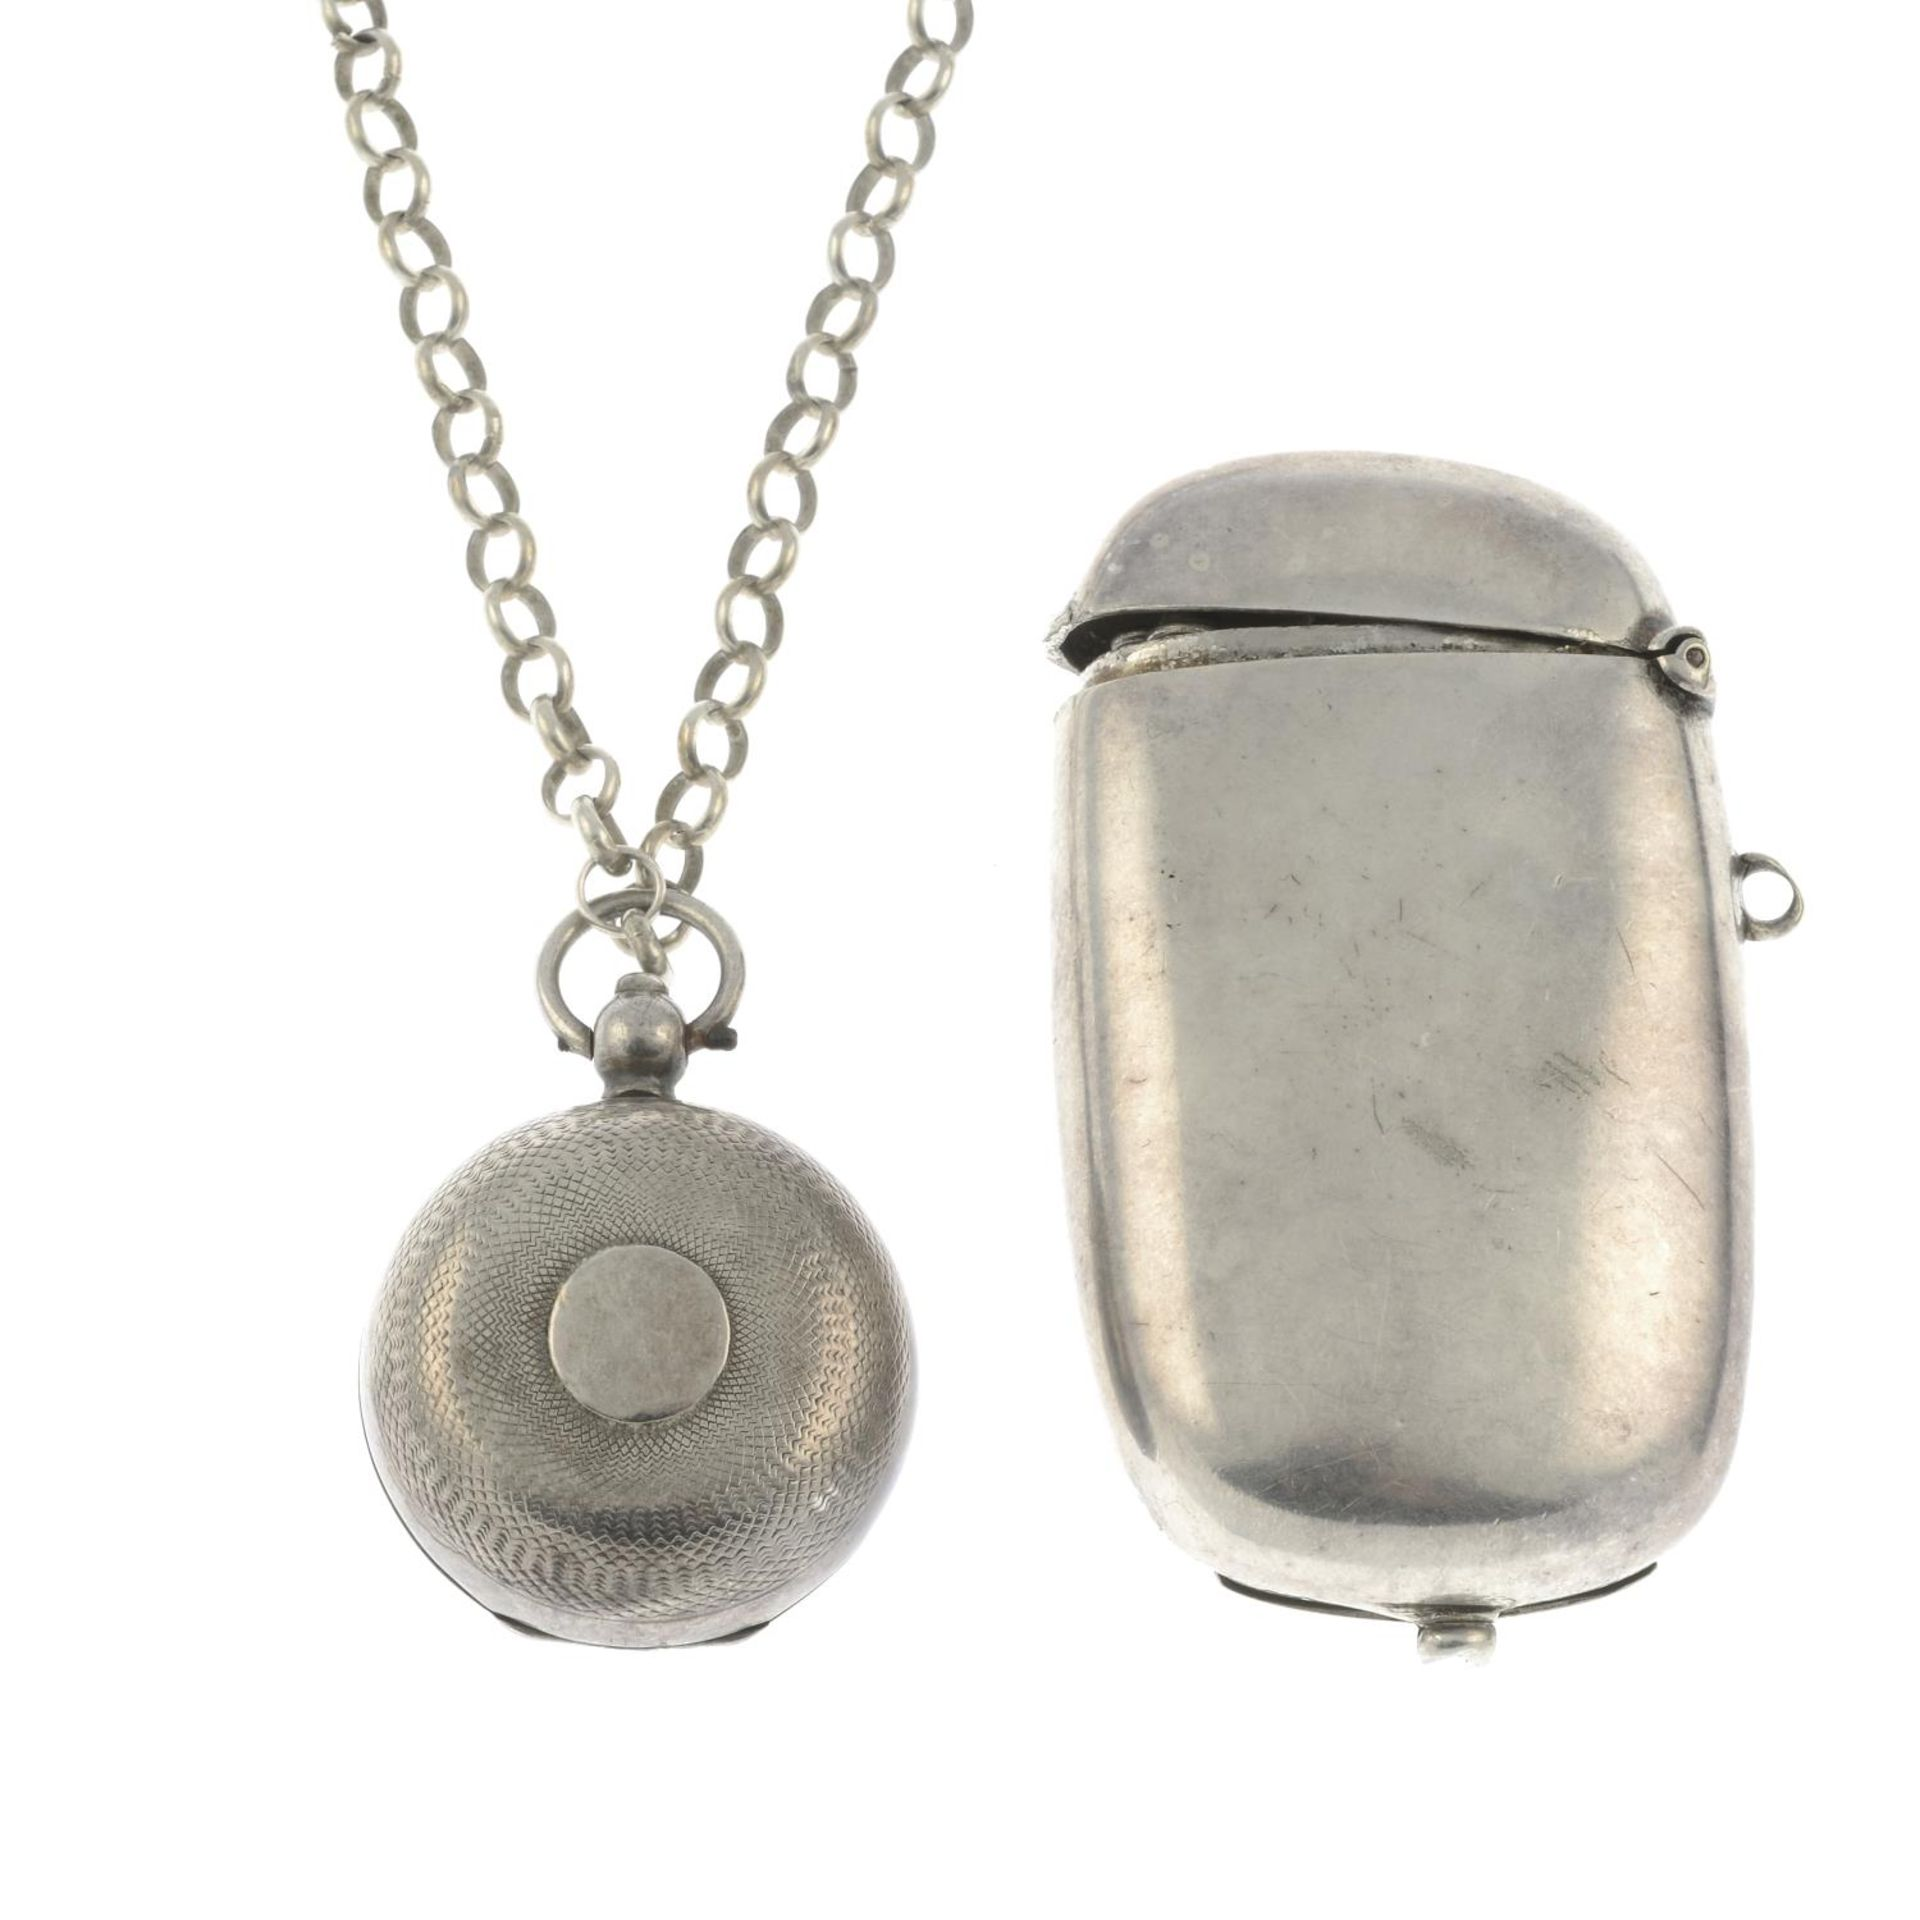 An Edwardian silver sovereign case with chain,